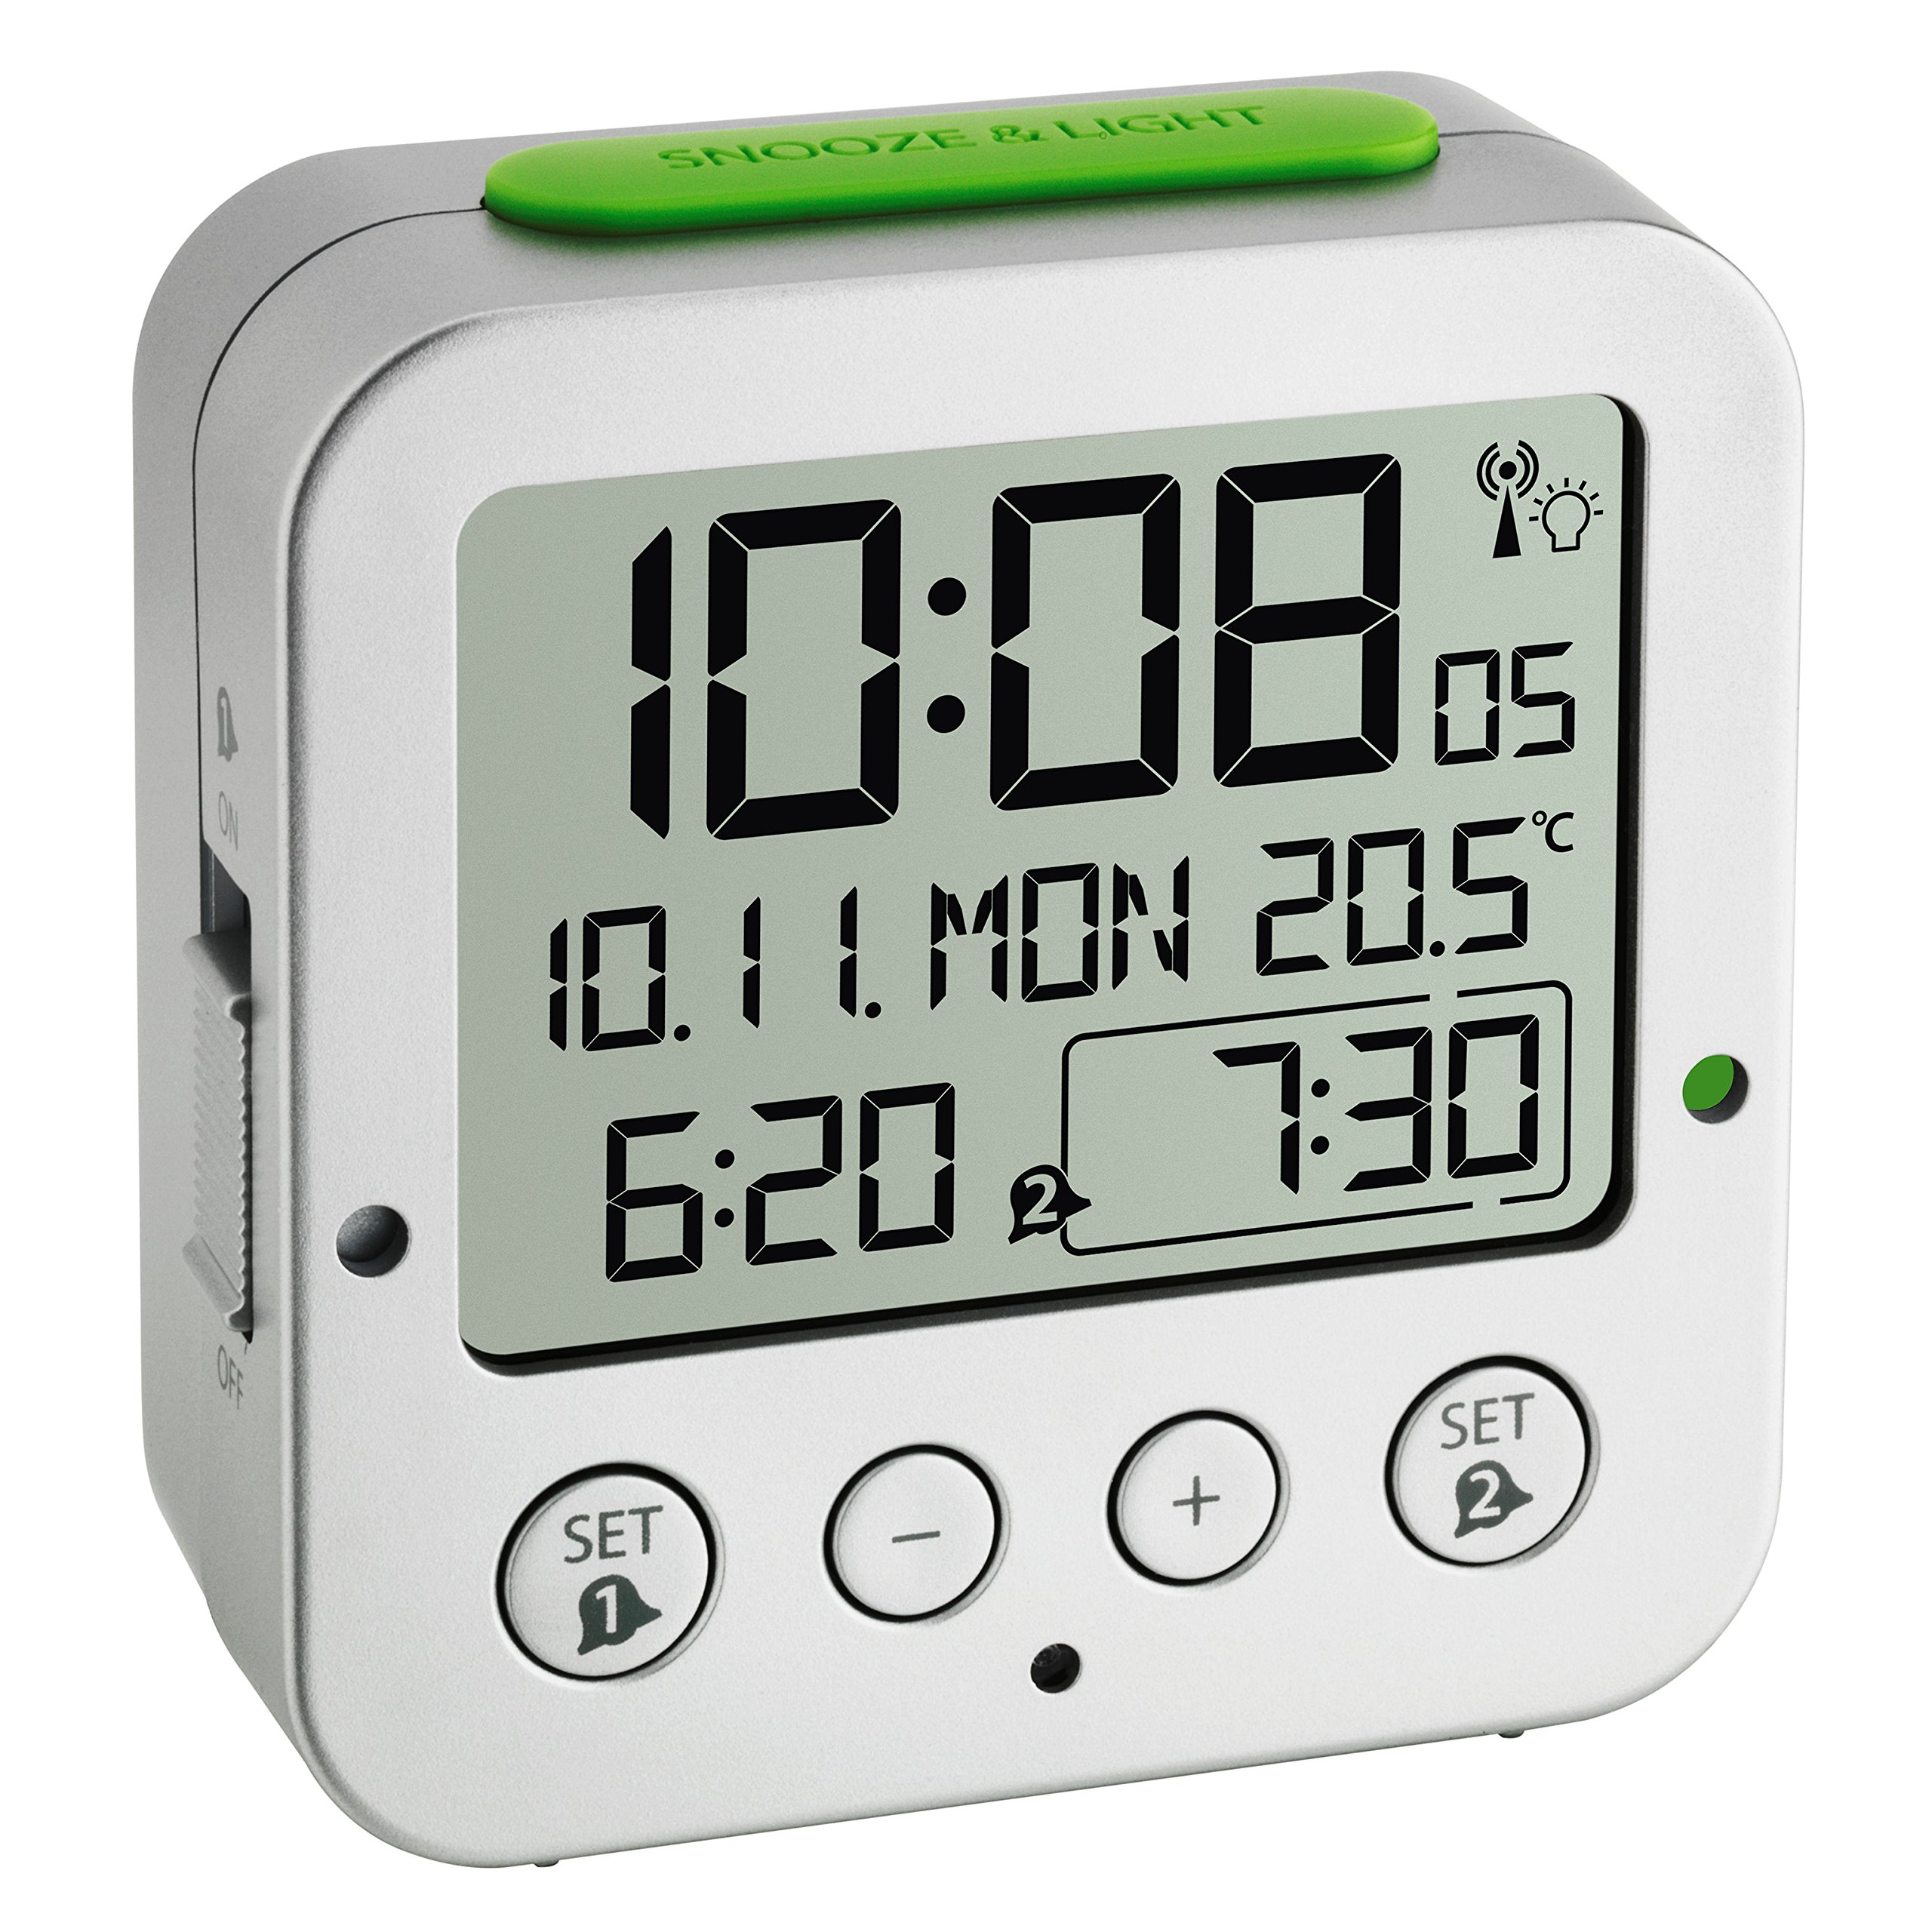 Blooming Weather ''Bingo Funkwecker'' Digital Alarm Clock with Radio-Controlled Time, Plastic, Silver by Blooming Weather